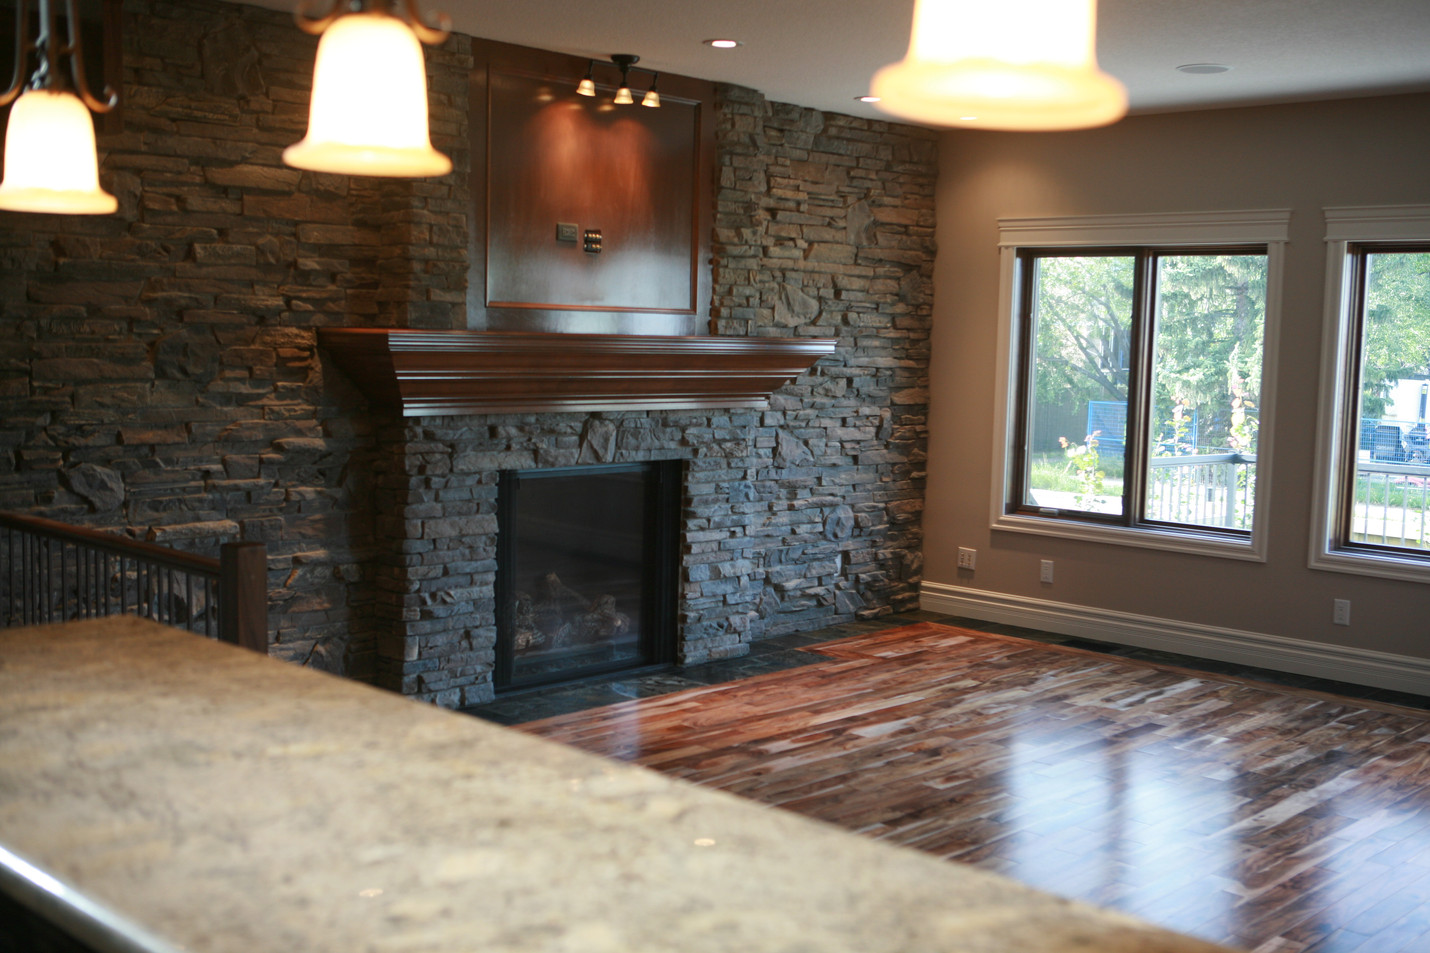 Ledgestone tile for this fireplace in this main floor living room lets the beauty in the hardwood stand out.